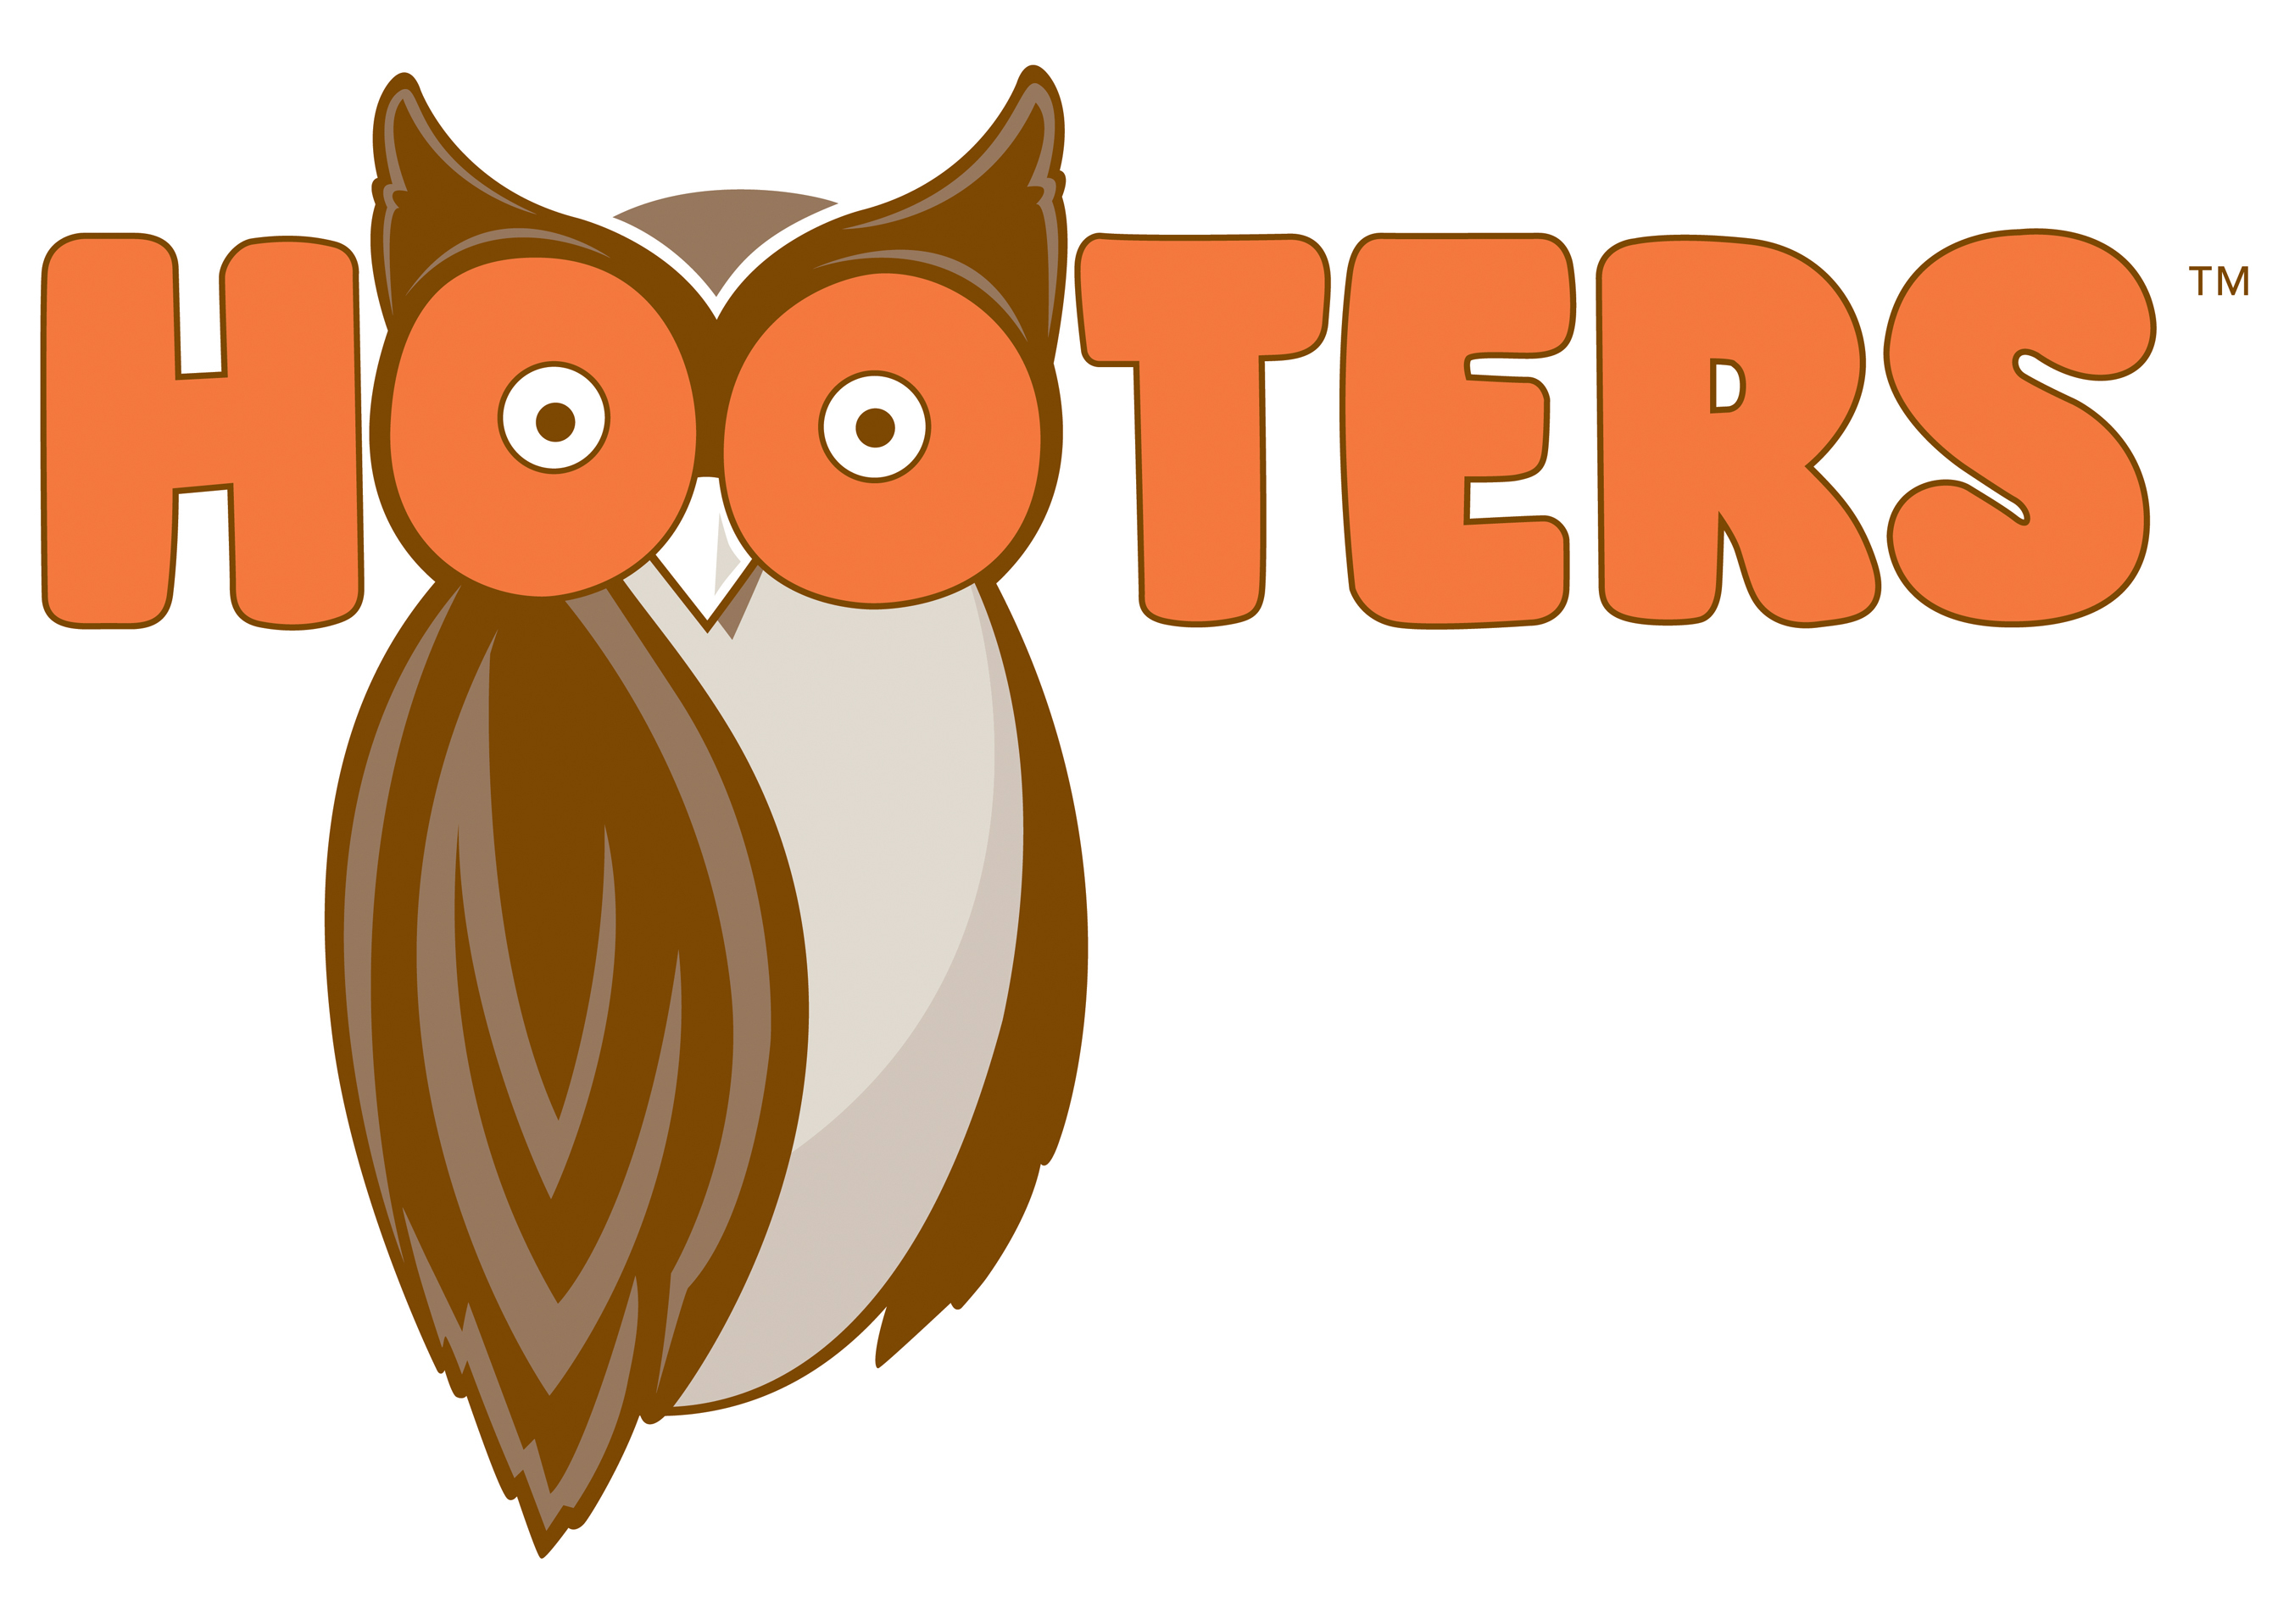 Hooter clipart #6, Download drawings